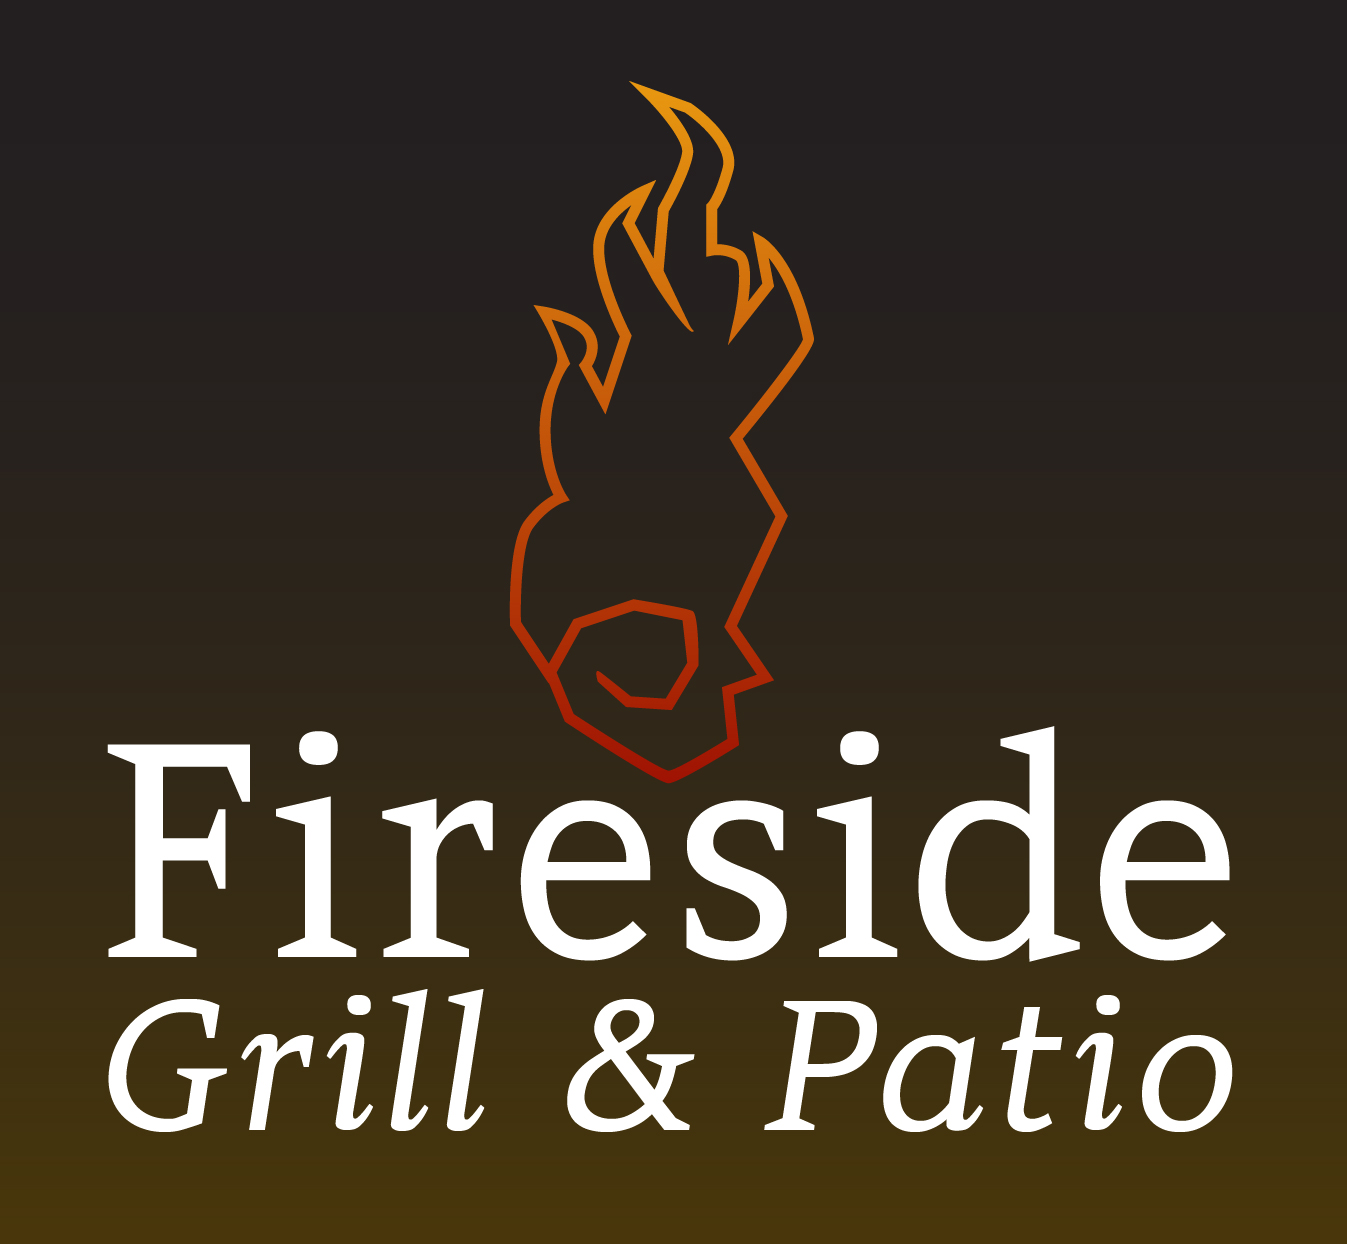 Fireside Grill & Patio